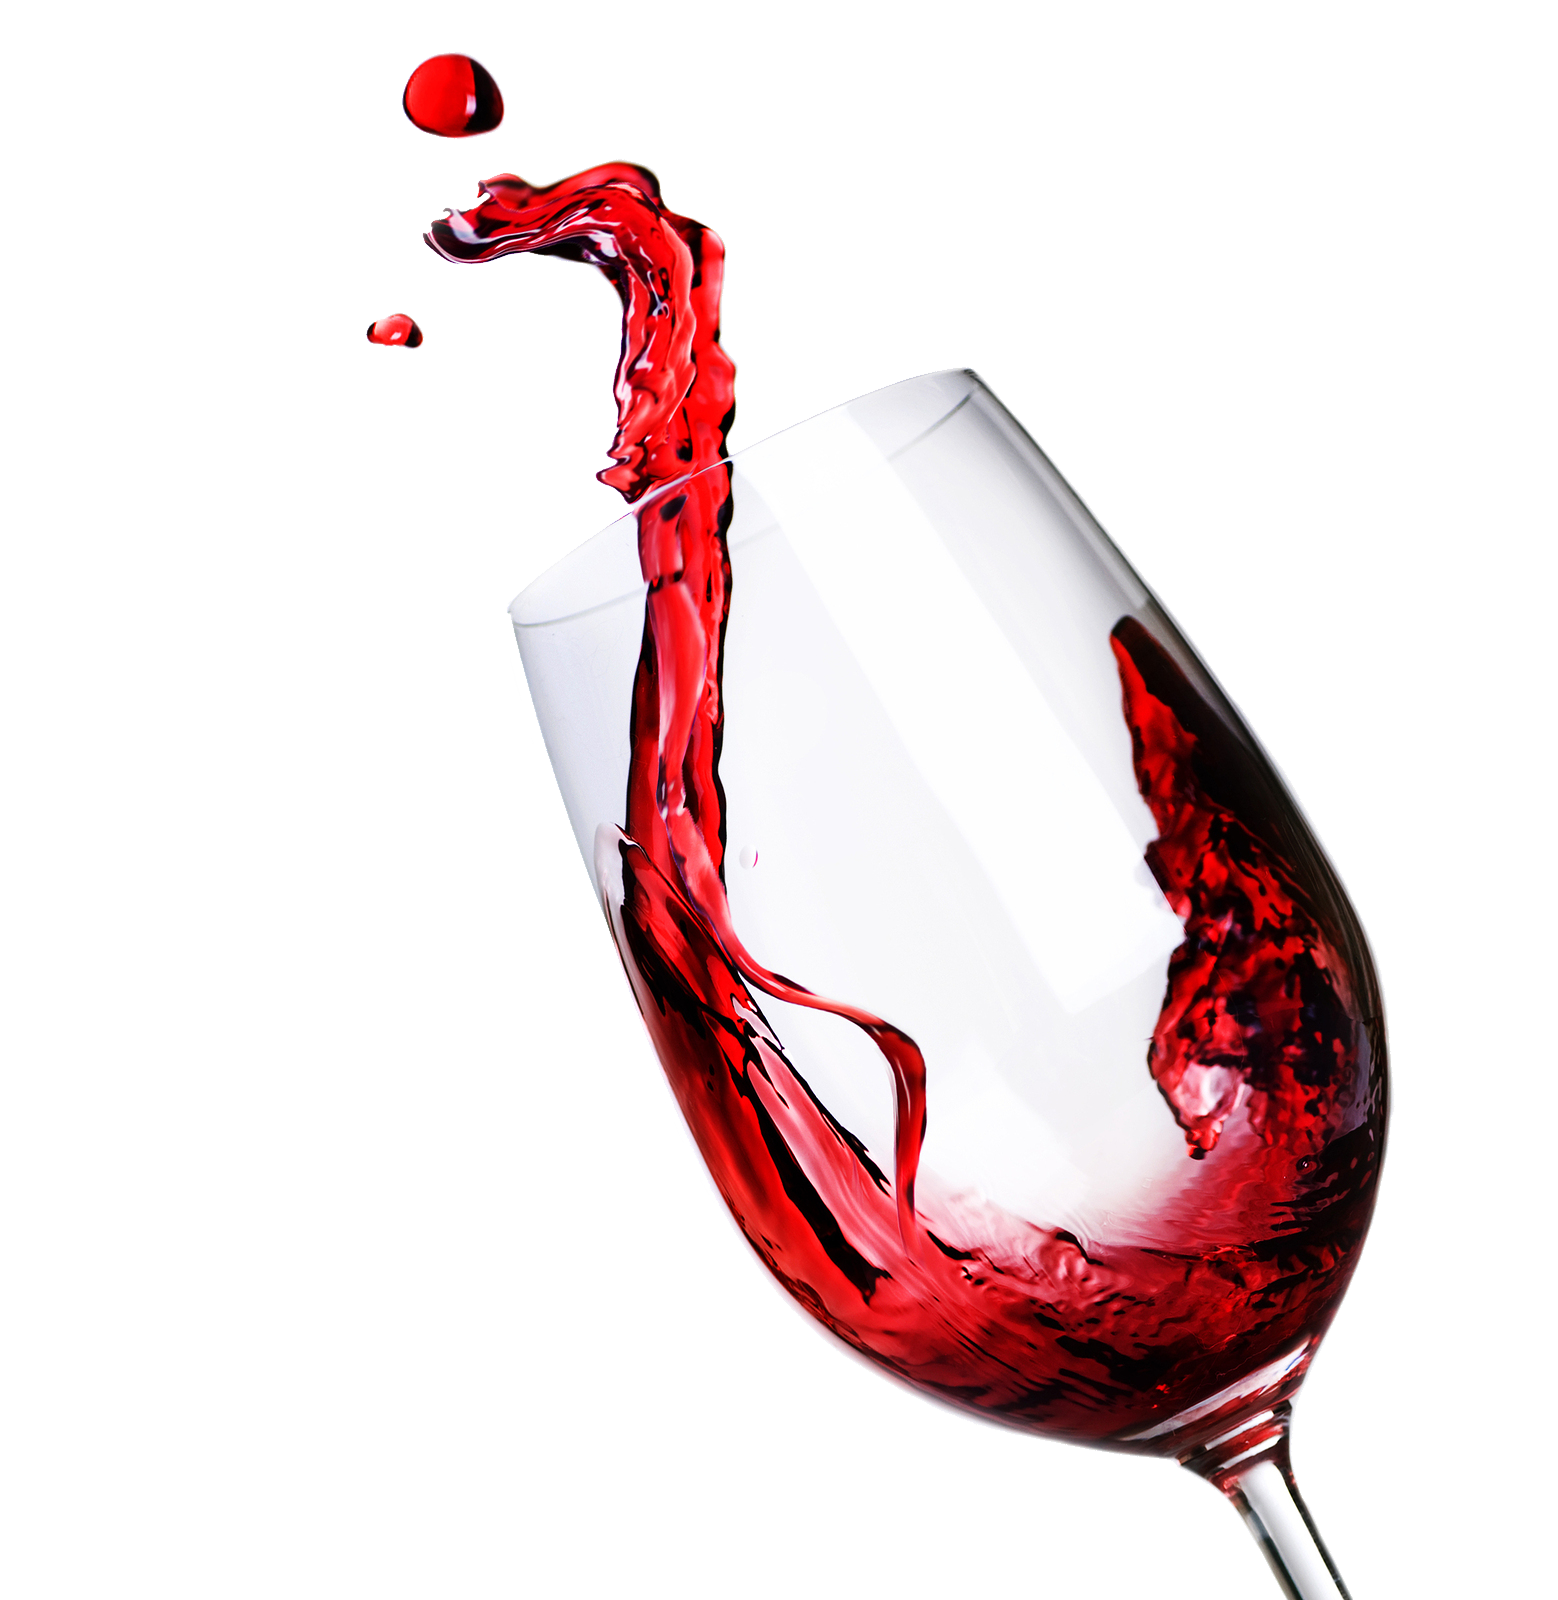 Transparent wine glass png. Images pluspng image